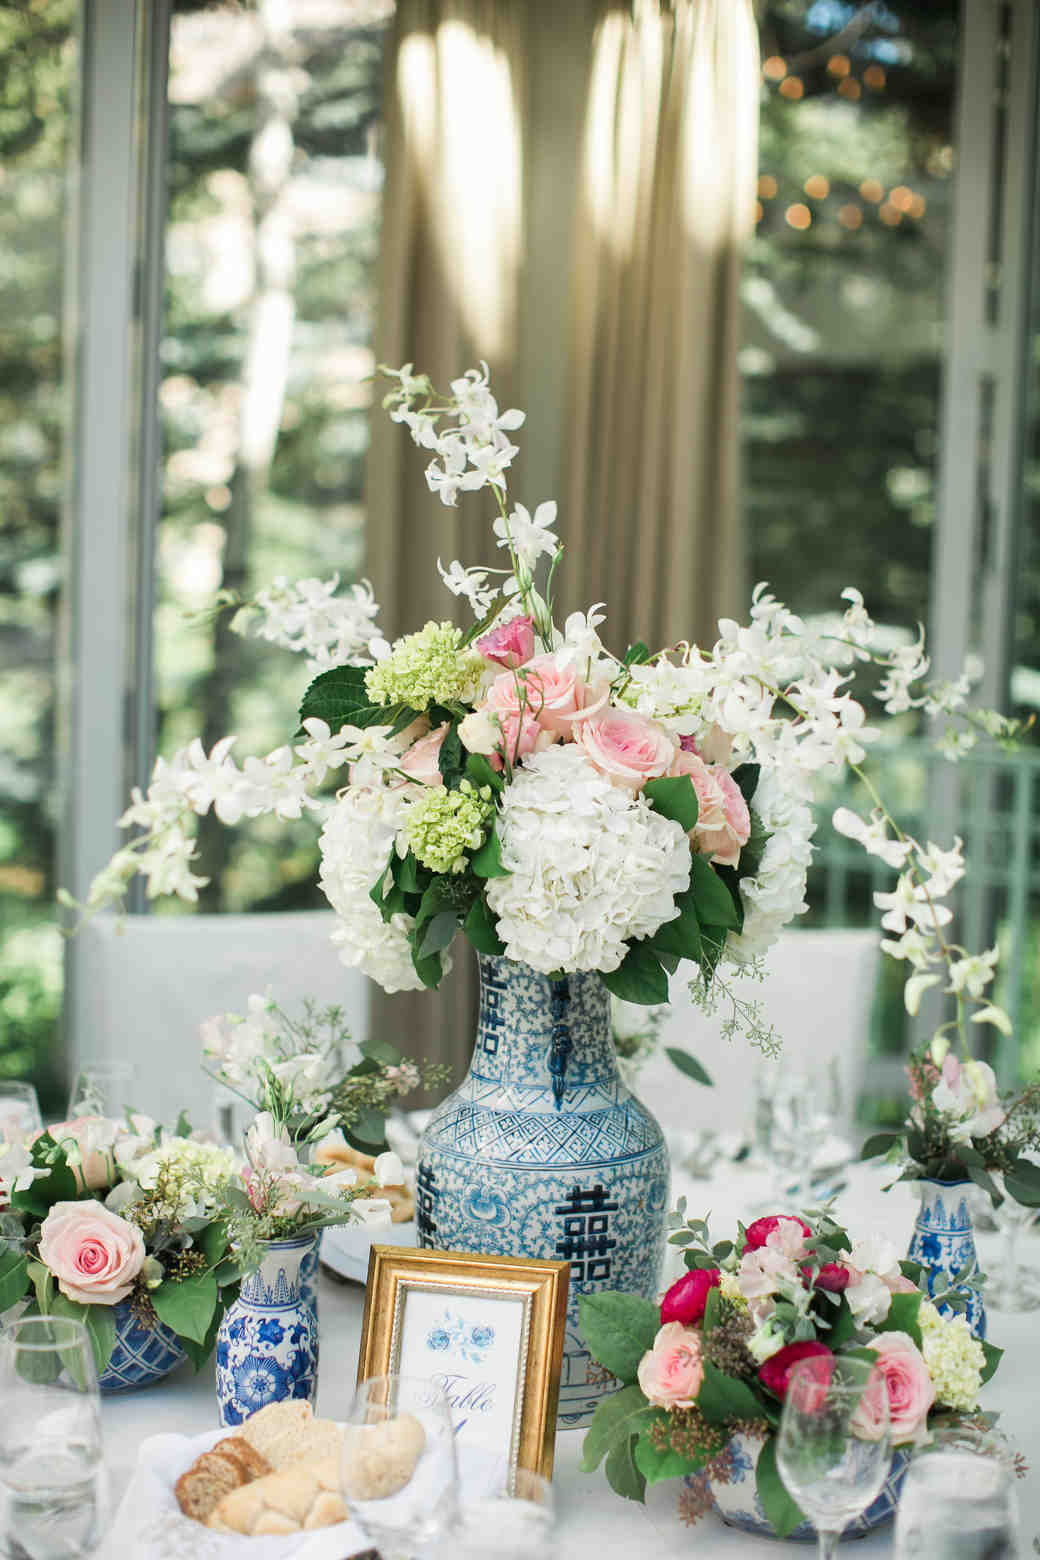 Vintage Bridal Shower Decor with Antique Vases and Flowers